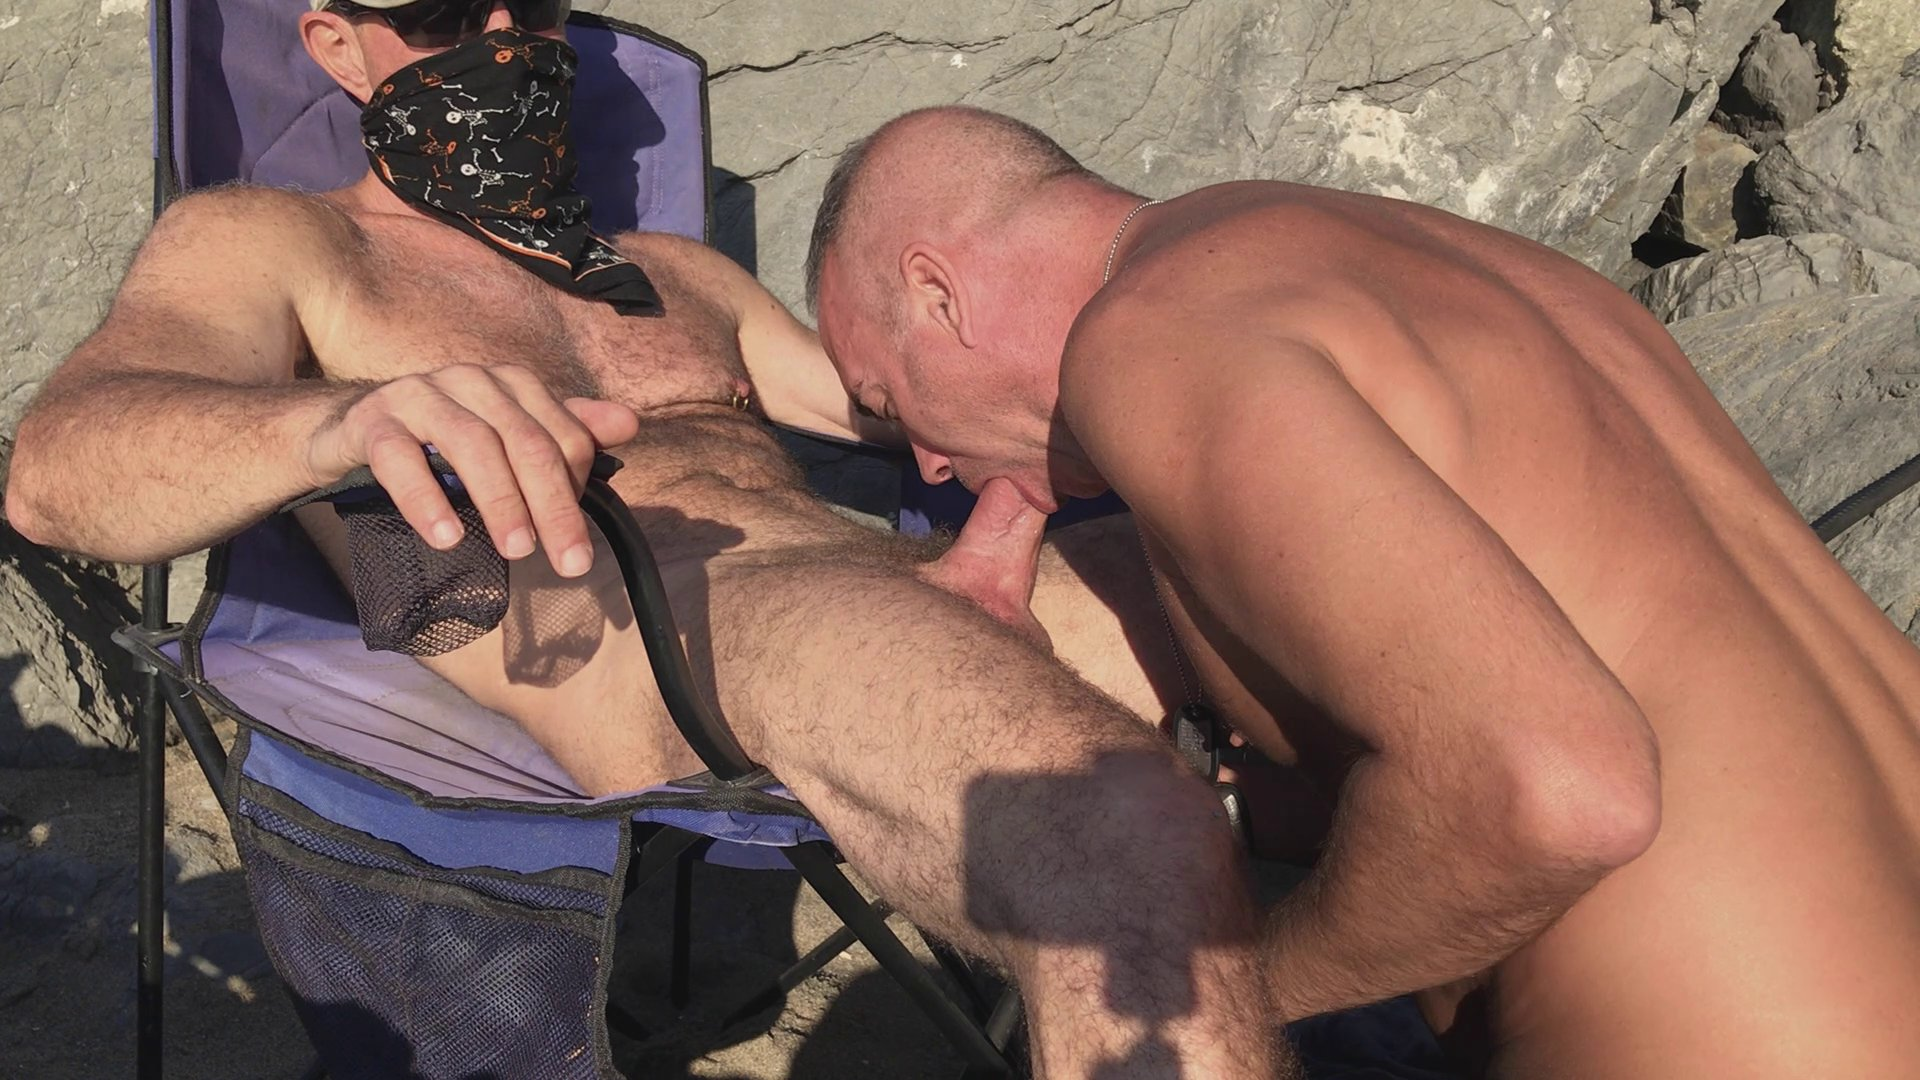 el sexo oral en plena playa